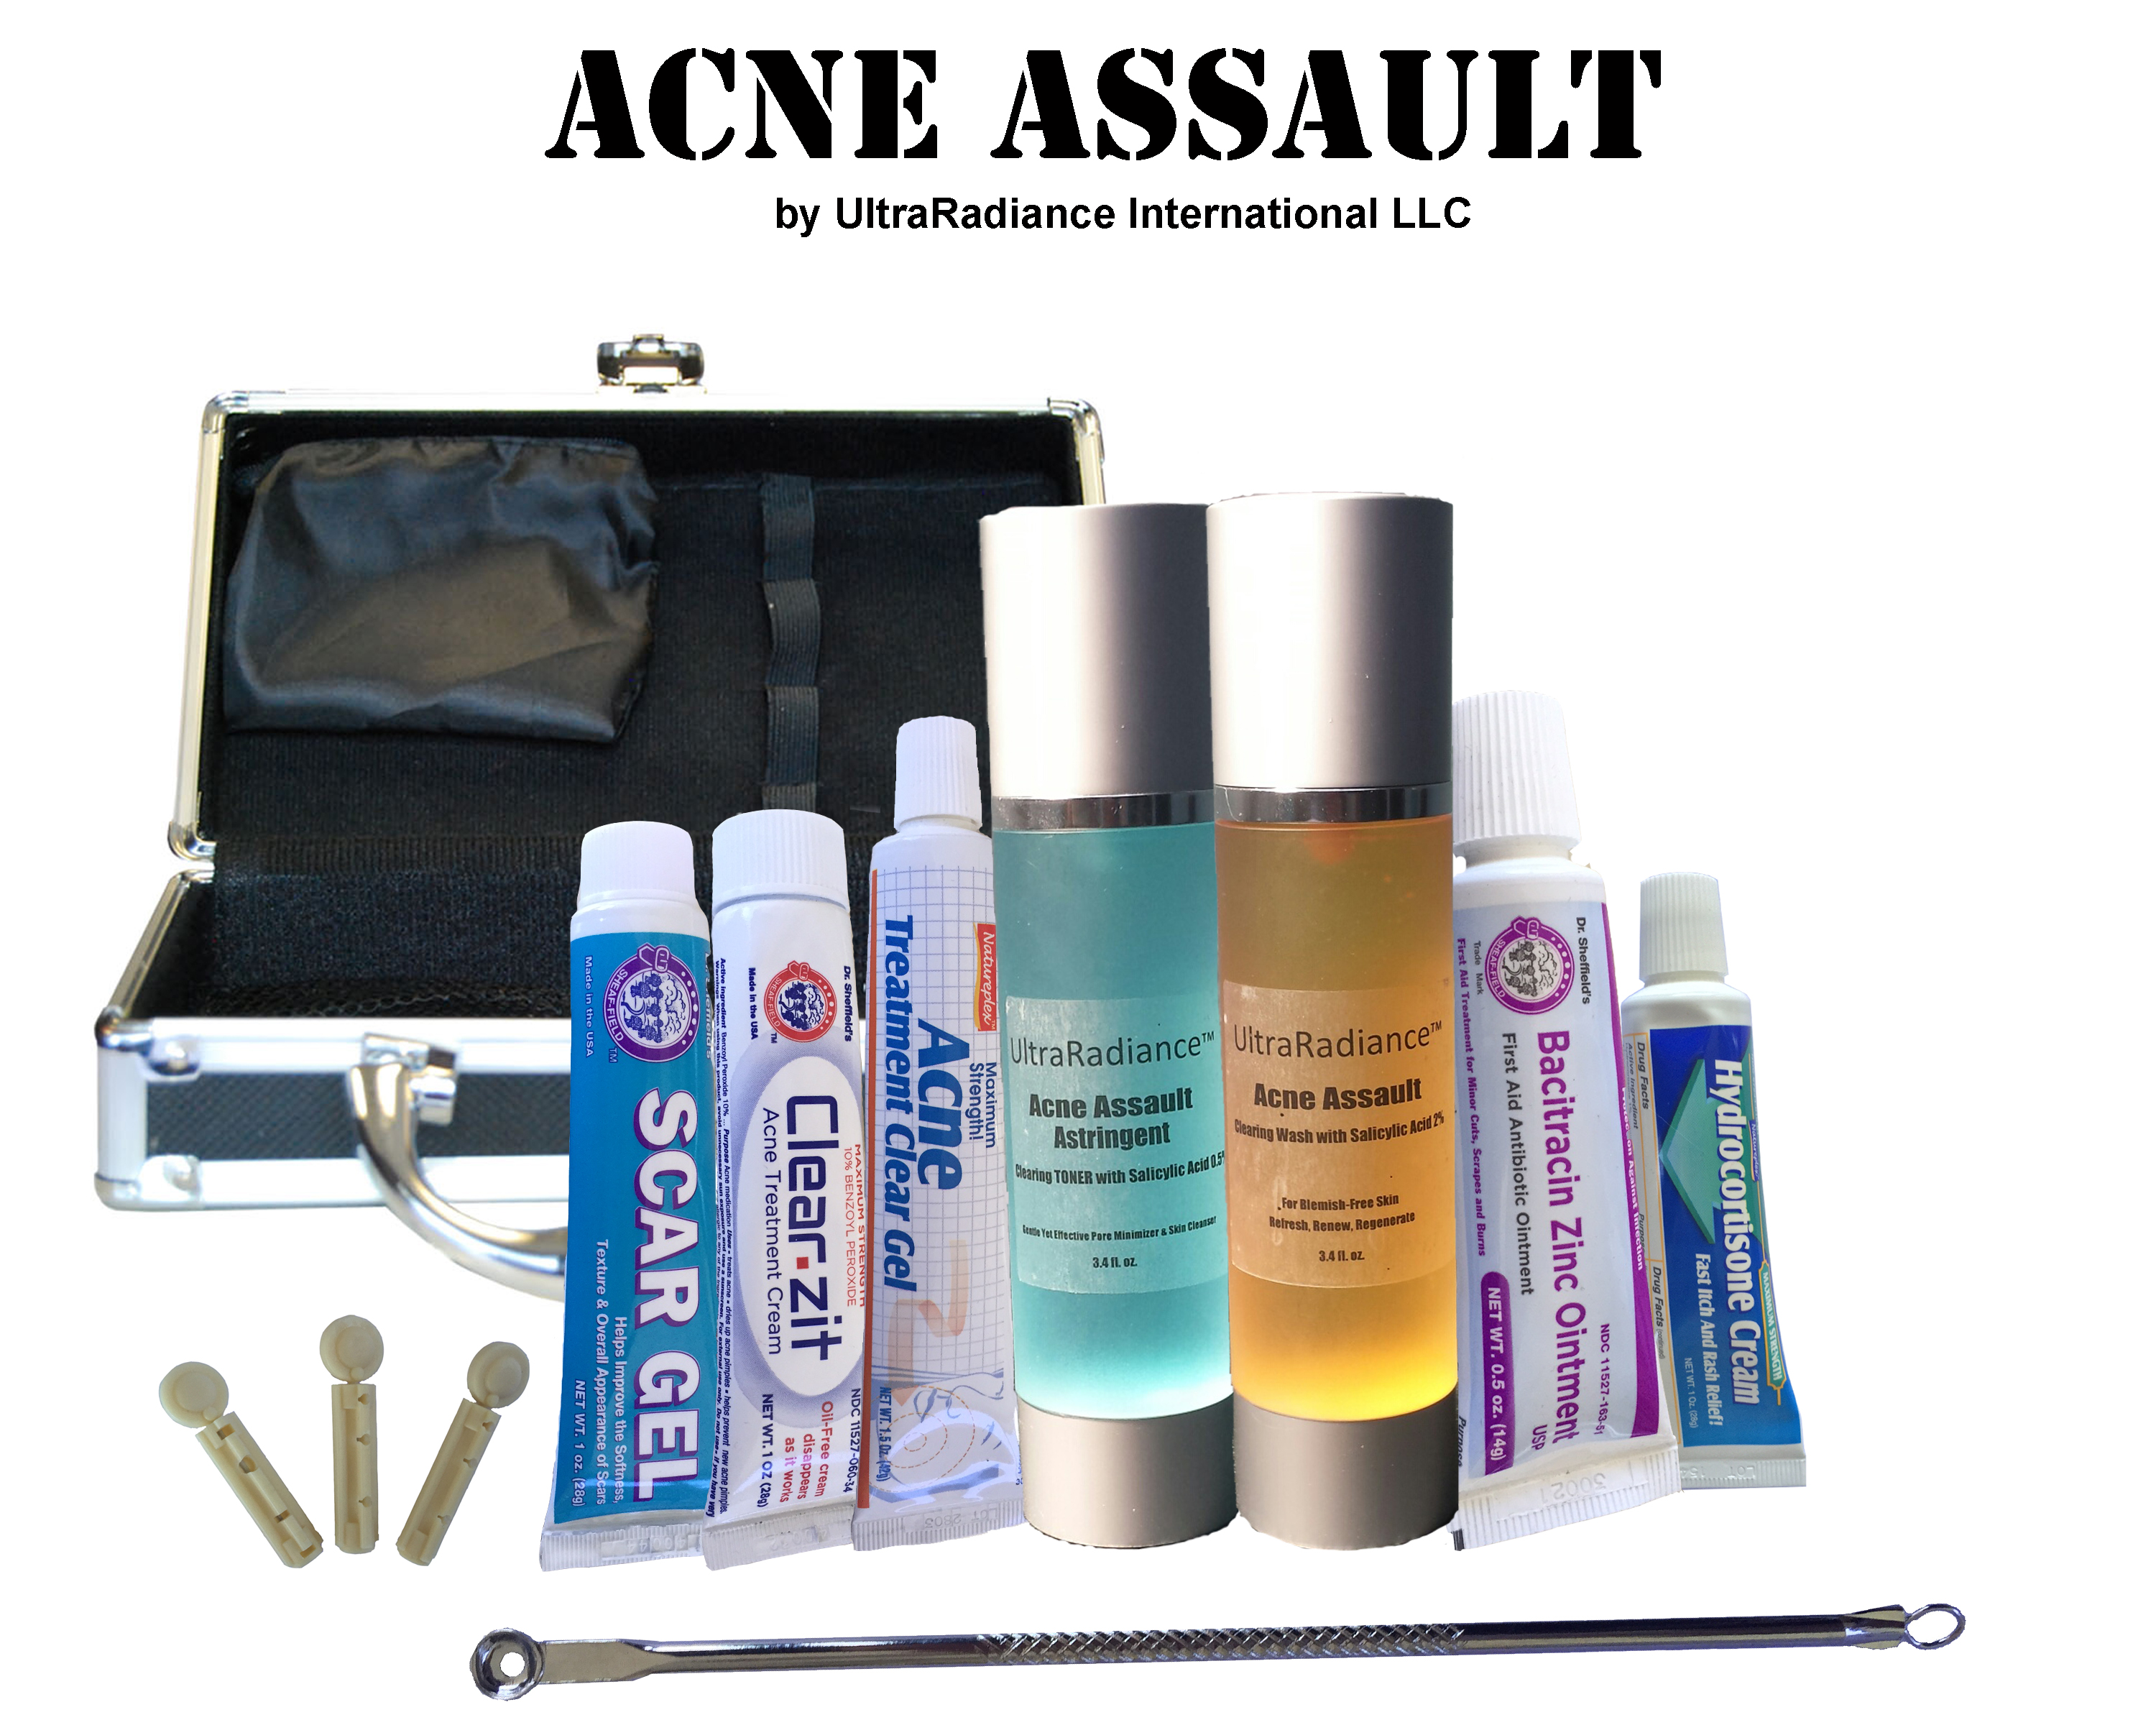 Acne Assault Kit copy